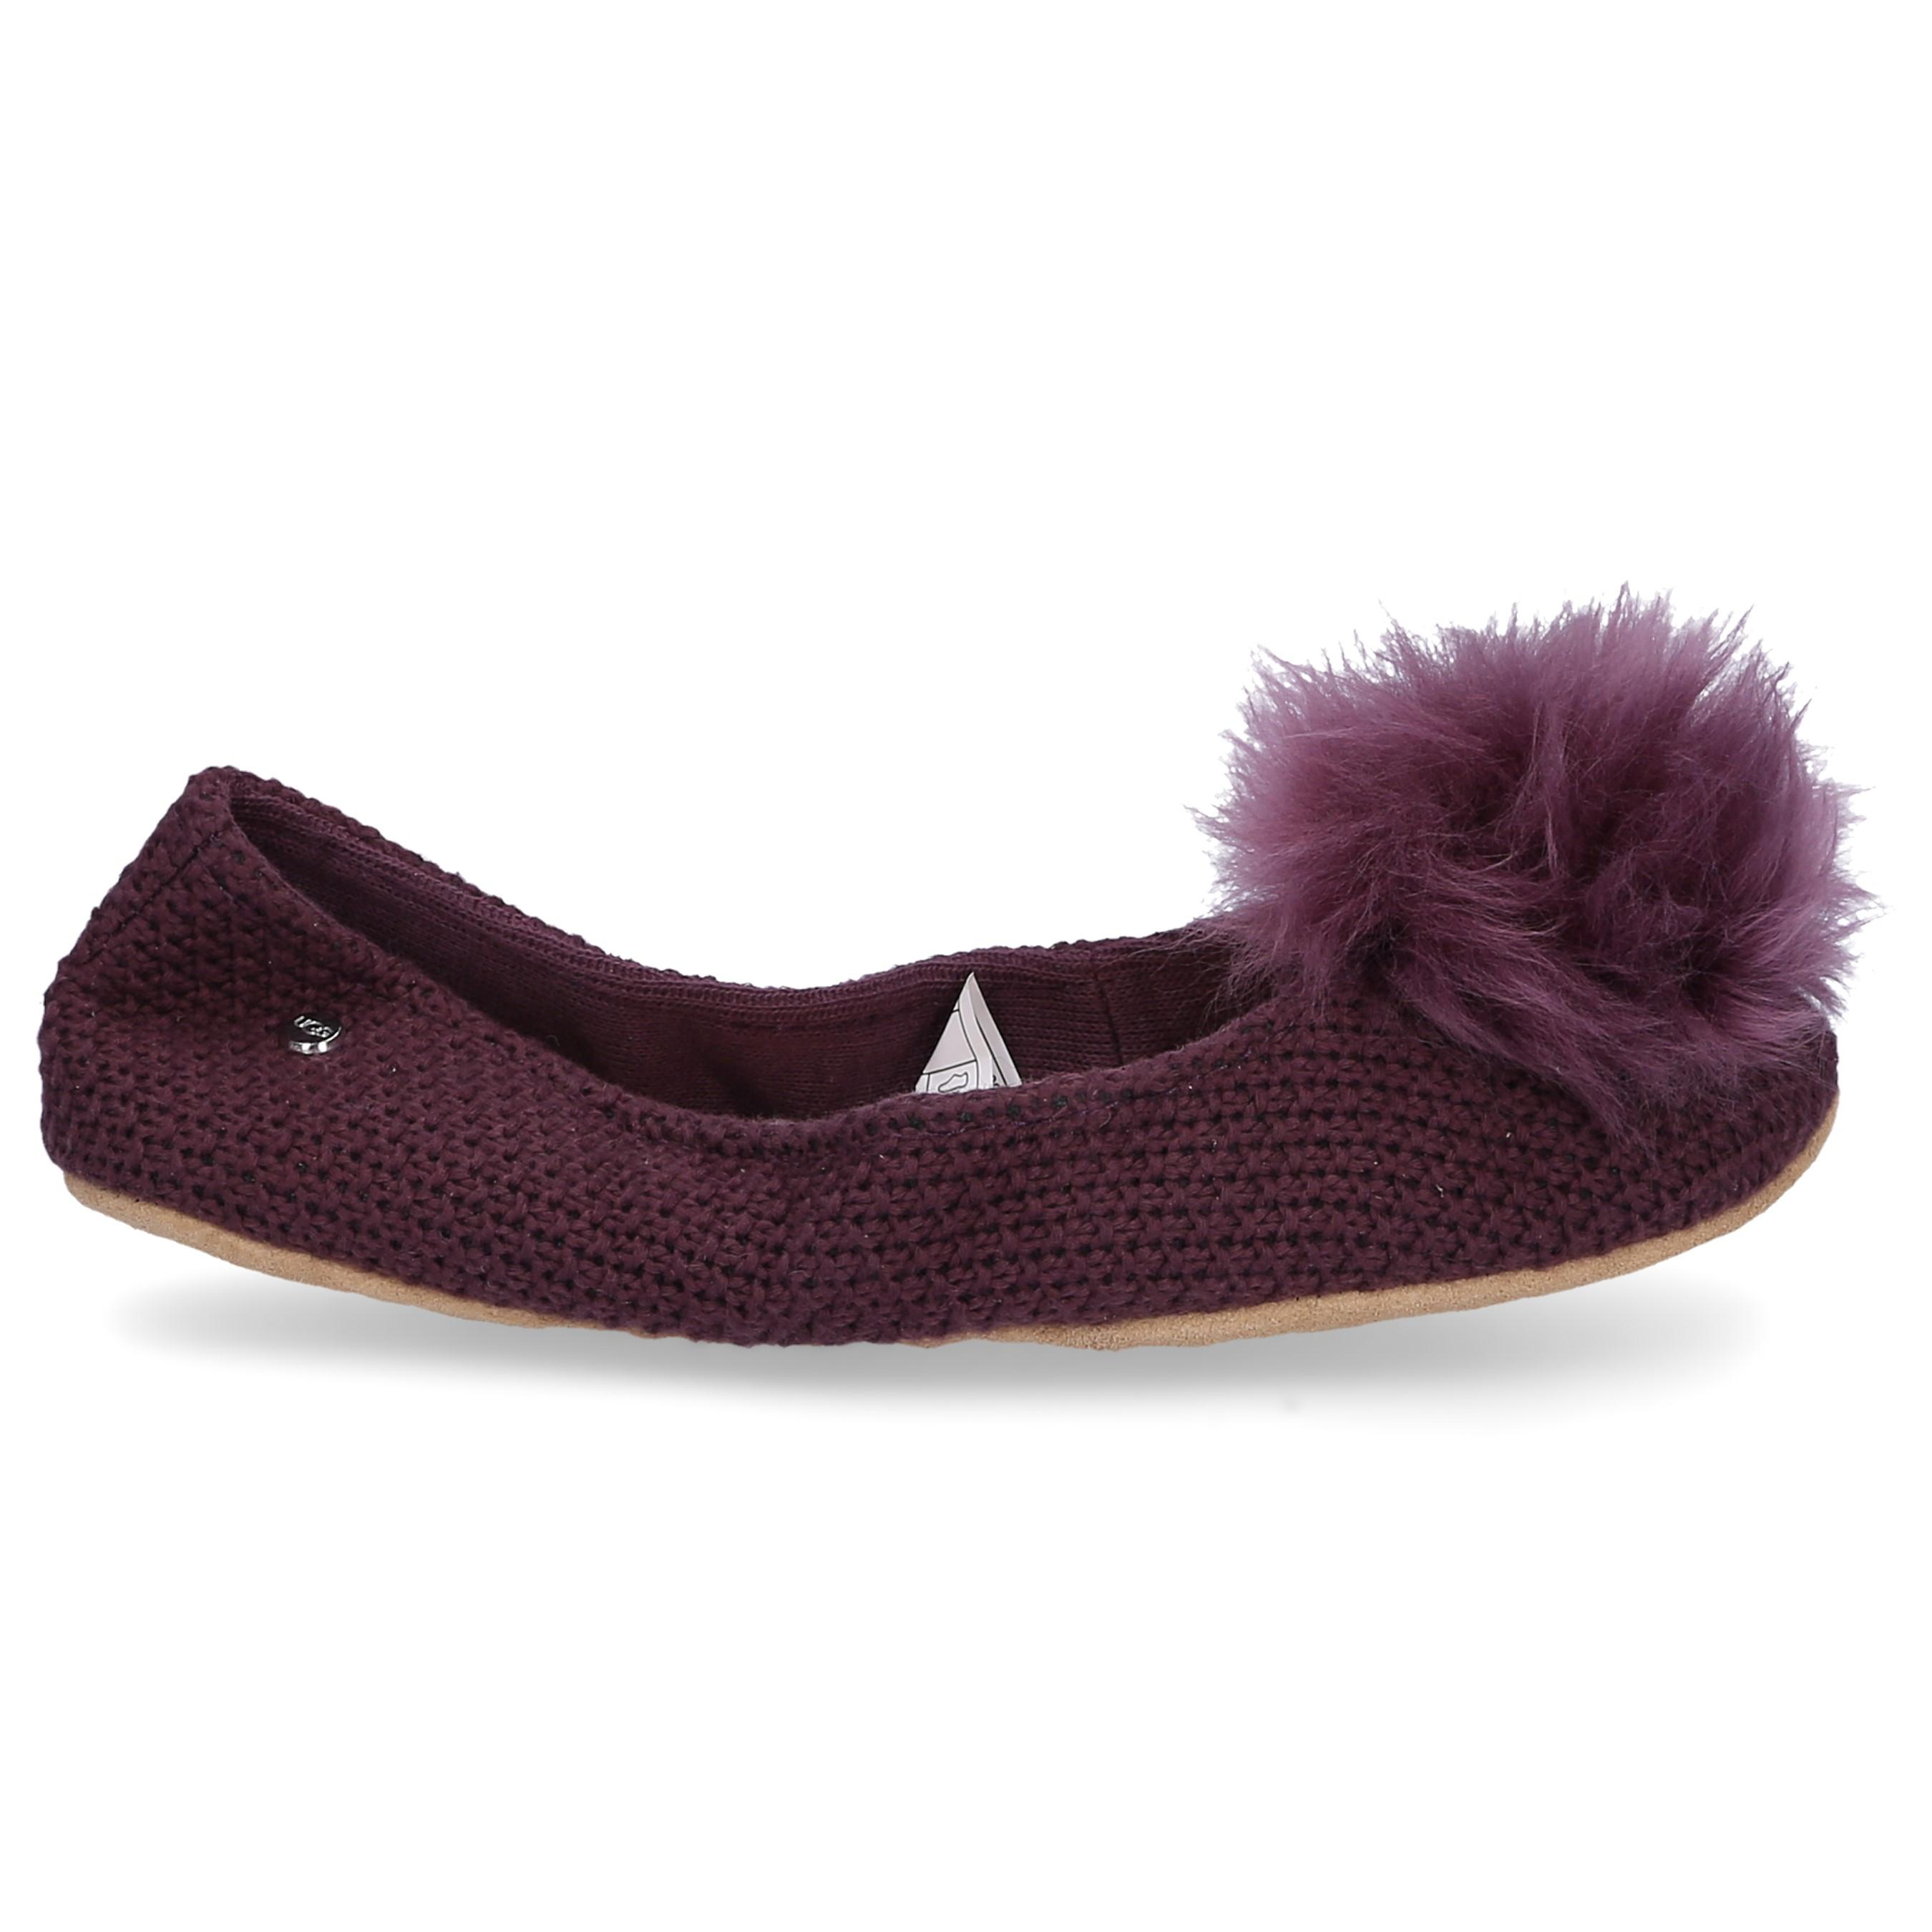 d1e49207b03 Lyst - UGG Slippers Andi in Red